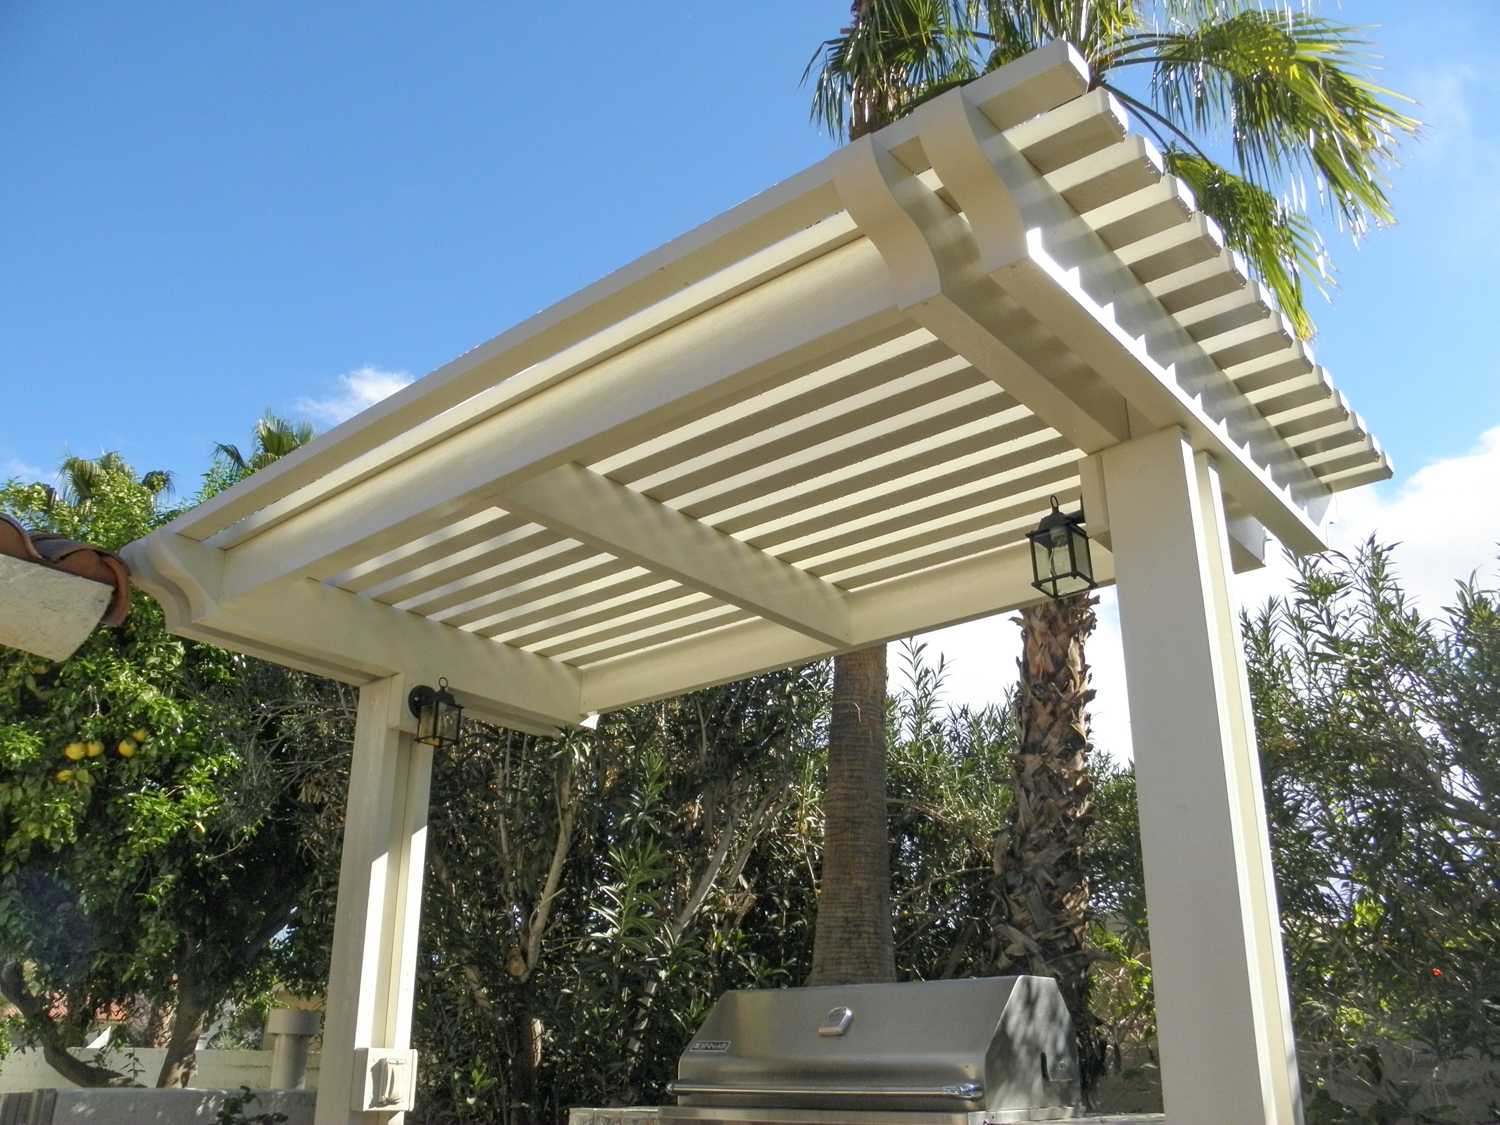 Patio Cover Ideas | Shade Structures | Patio Covers ... on Backyard Patio Cover Ideas  id=39098